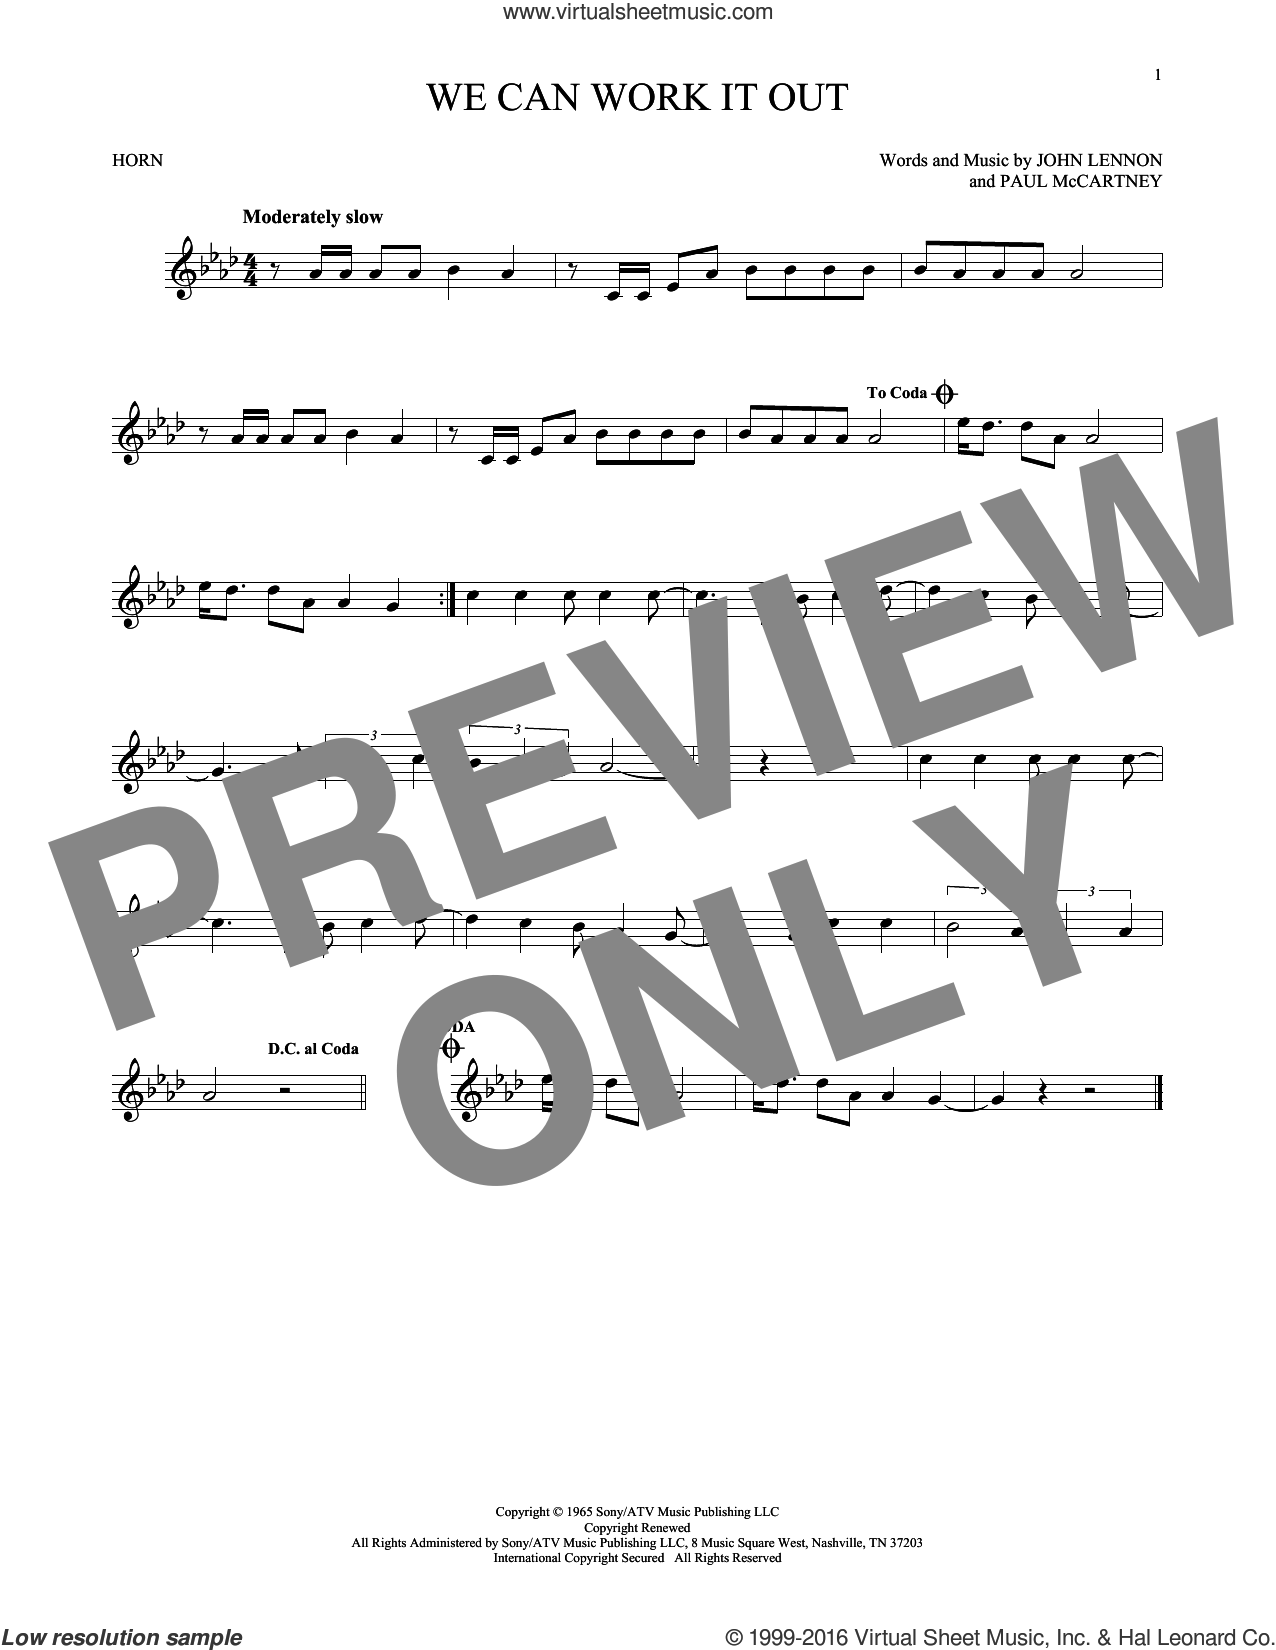 We Can Work It Out sheet music for horn solo by Paul McCartney